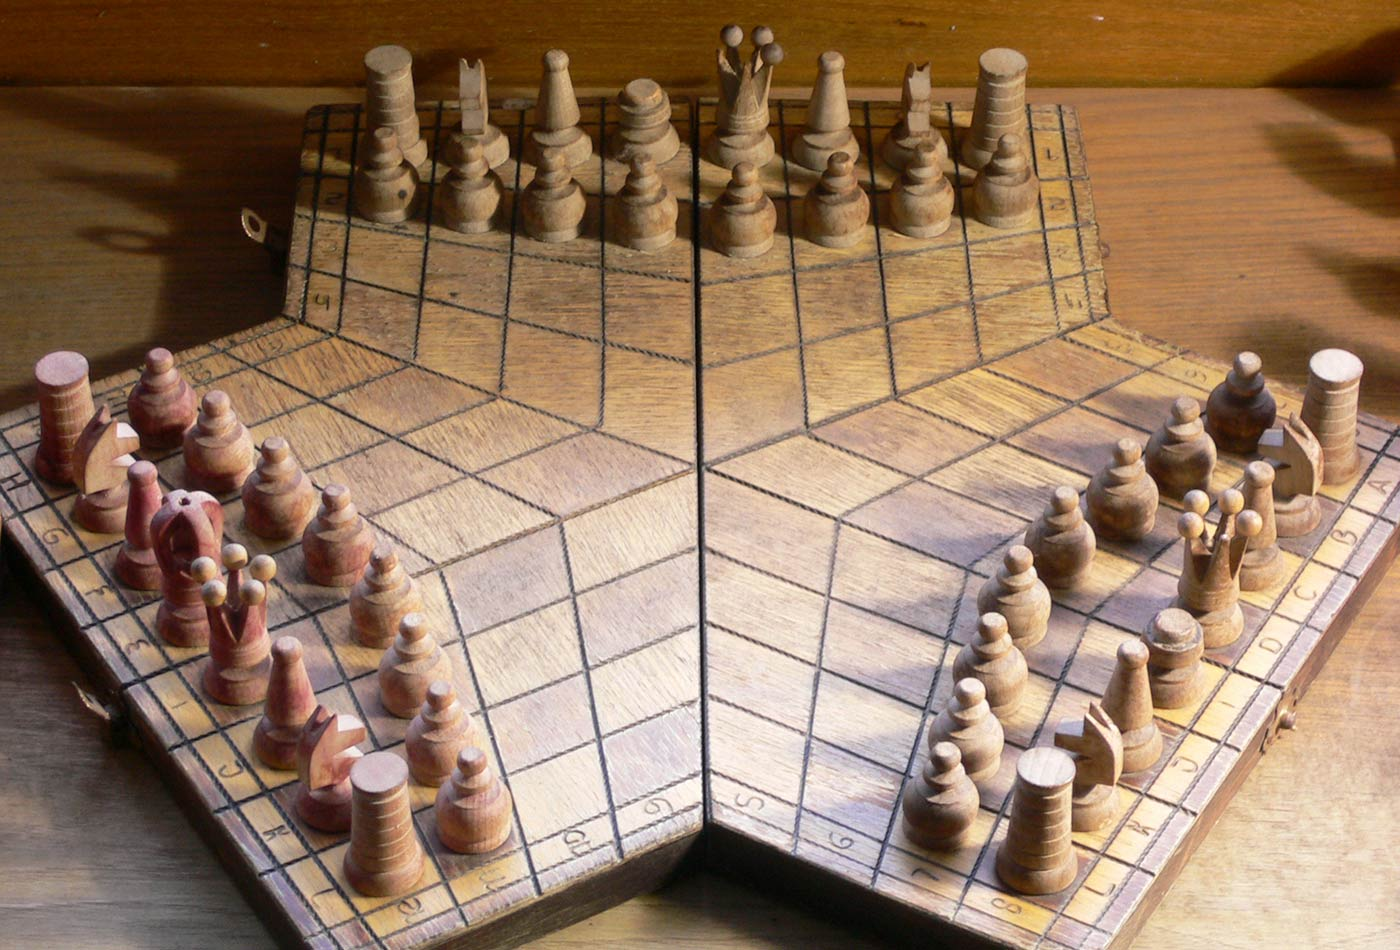 3 players chessboard.